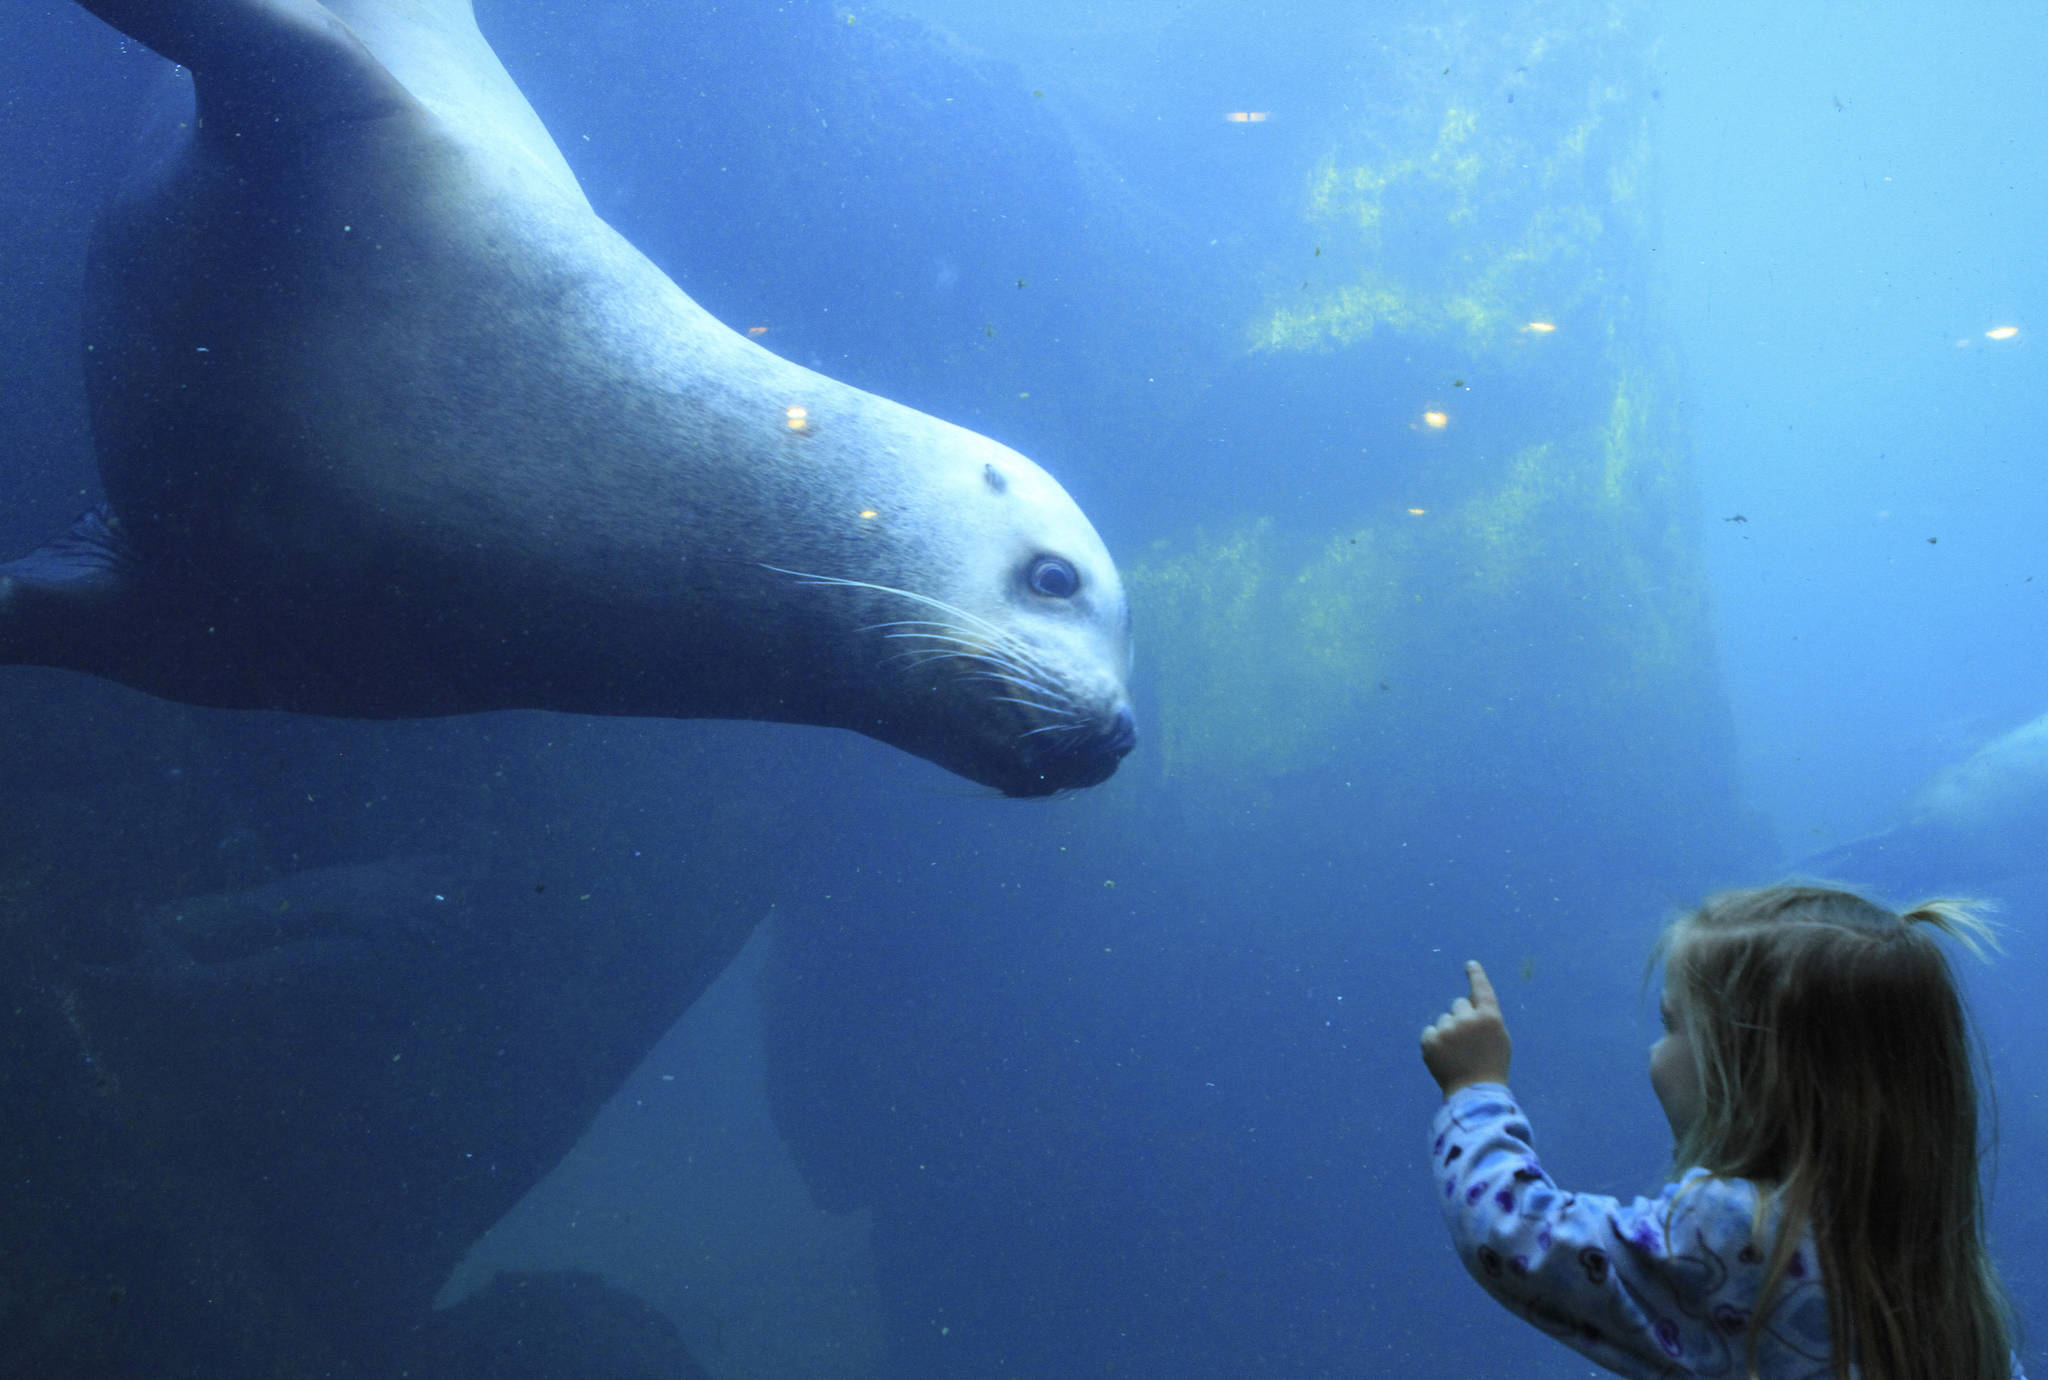 Elin Lunoe, and Pilot, a Steller sea lion, check each other out at a tank at the Alaska SeaLife Center in Seward in this February 2015 photo.  The Alaska SeaLife Center is among the recipients of U.S. Fish and Wildlife Conservation Commission funds. (AP Photo/Dan Joling)